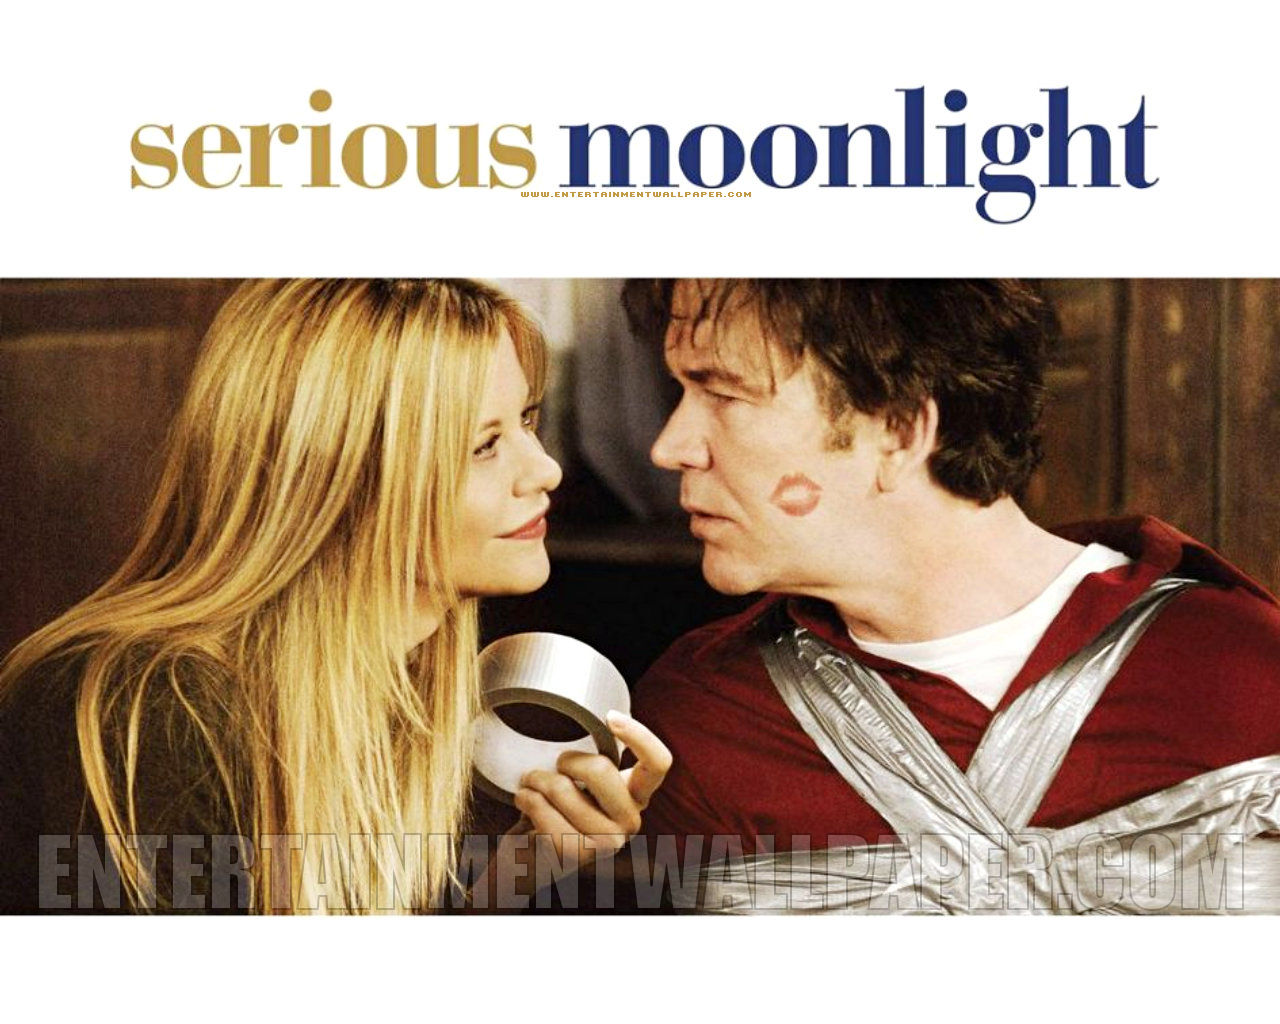 Serious Moonlight | Senseless Ramblings of the Mindless